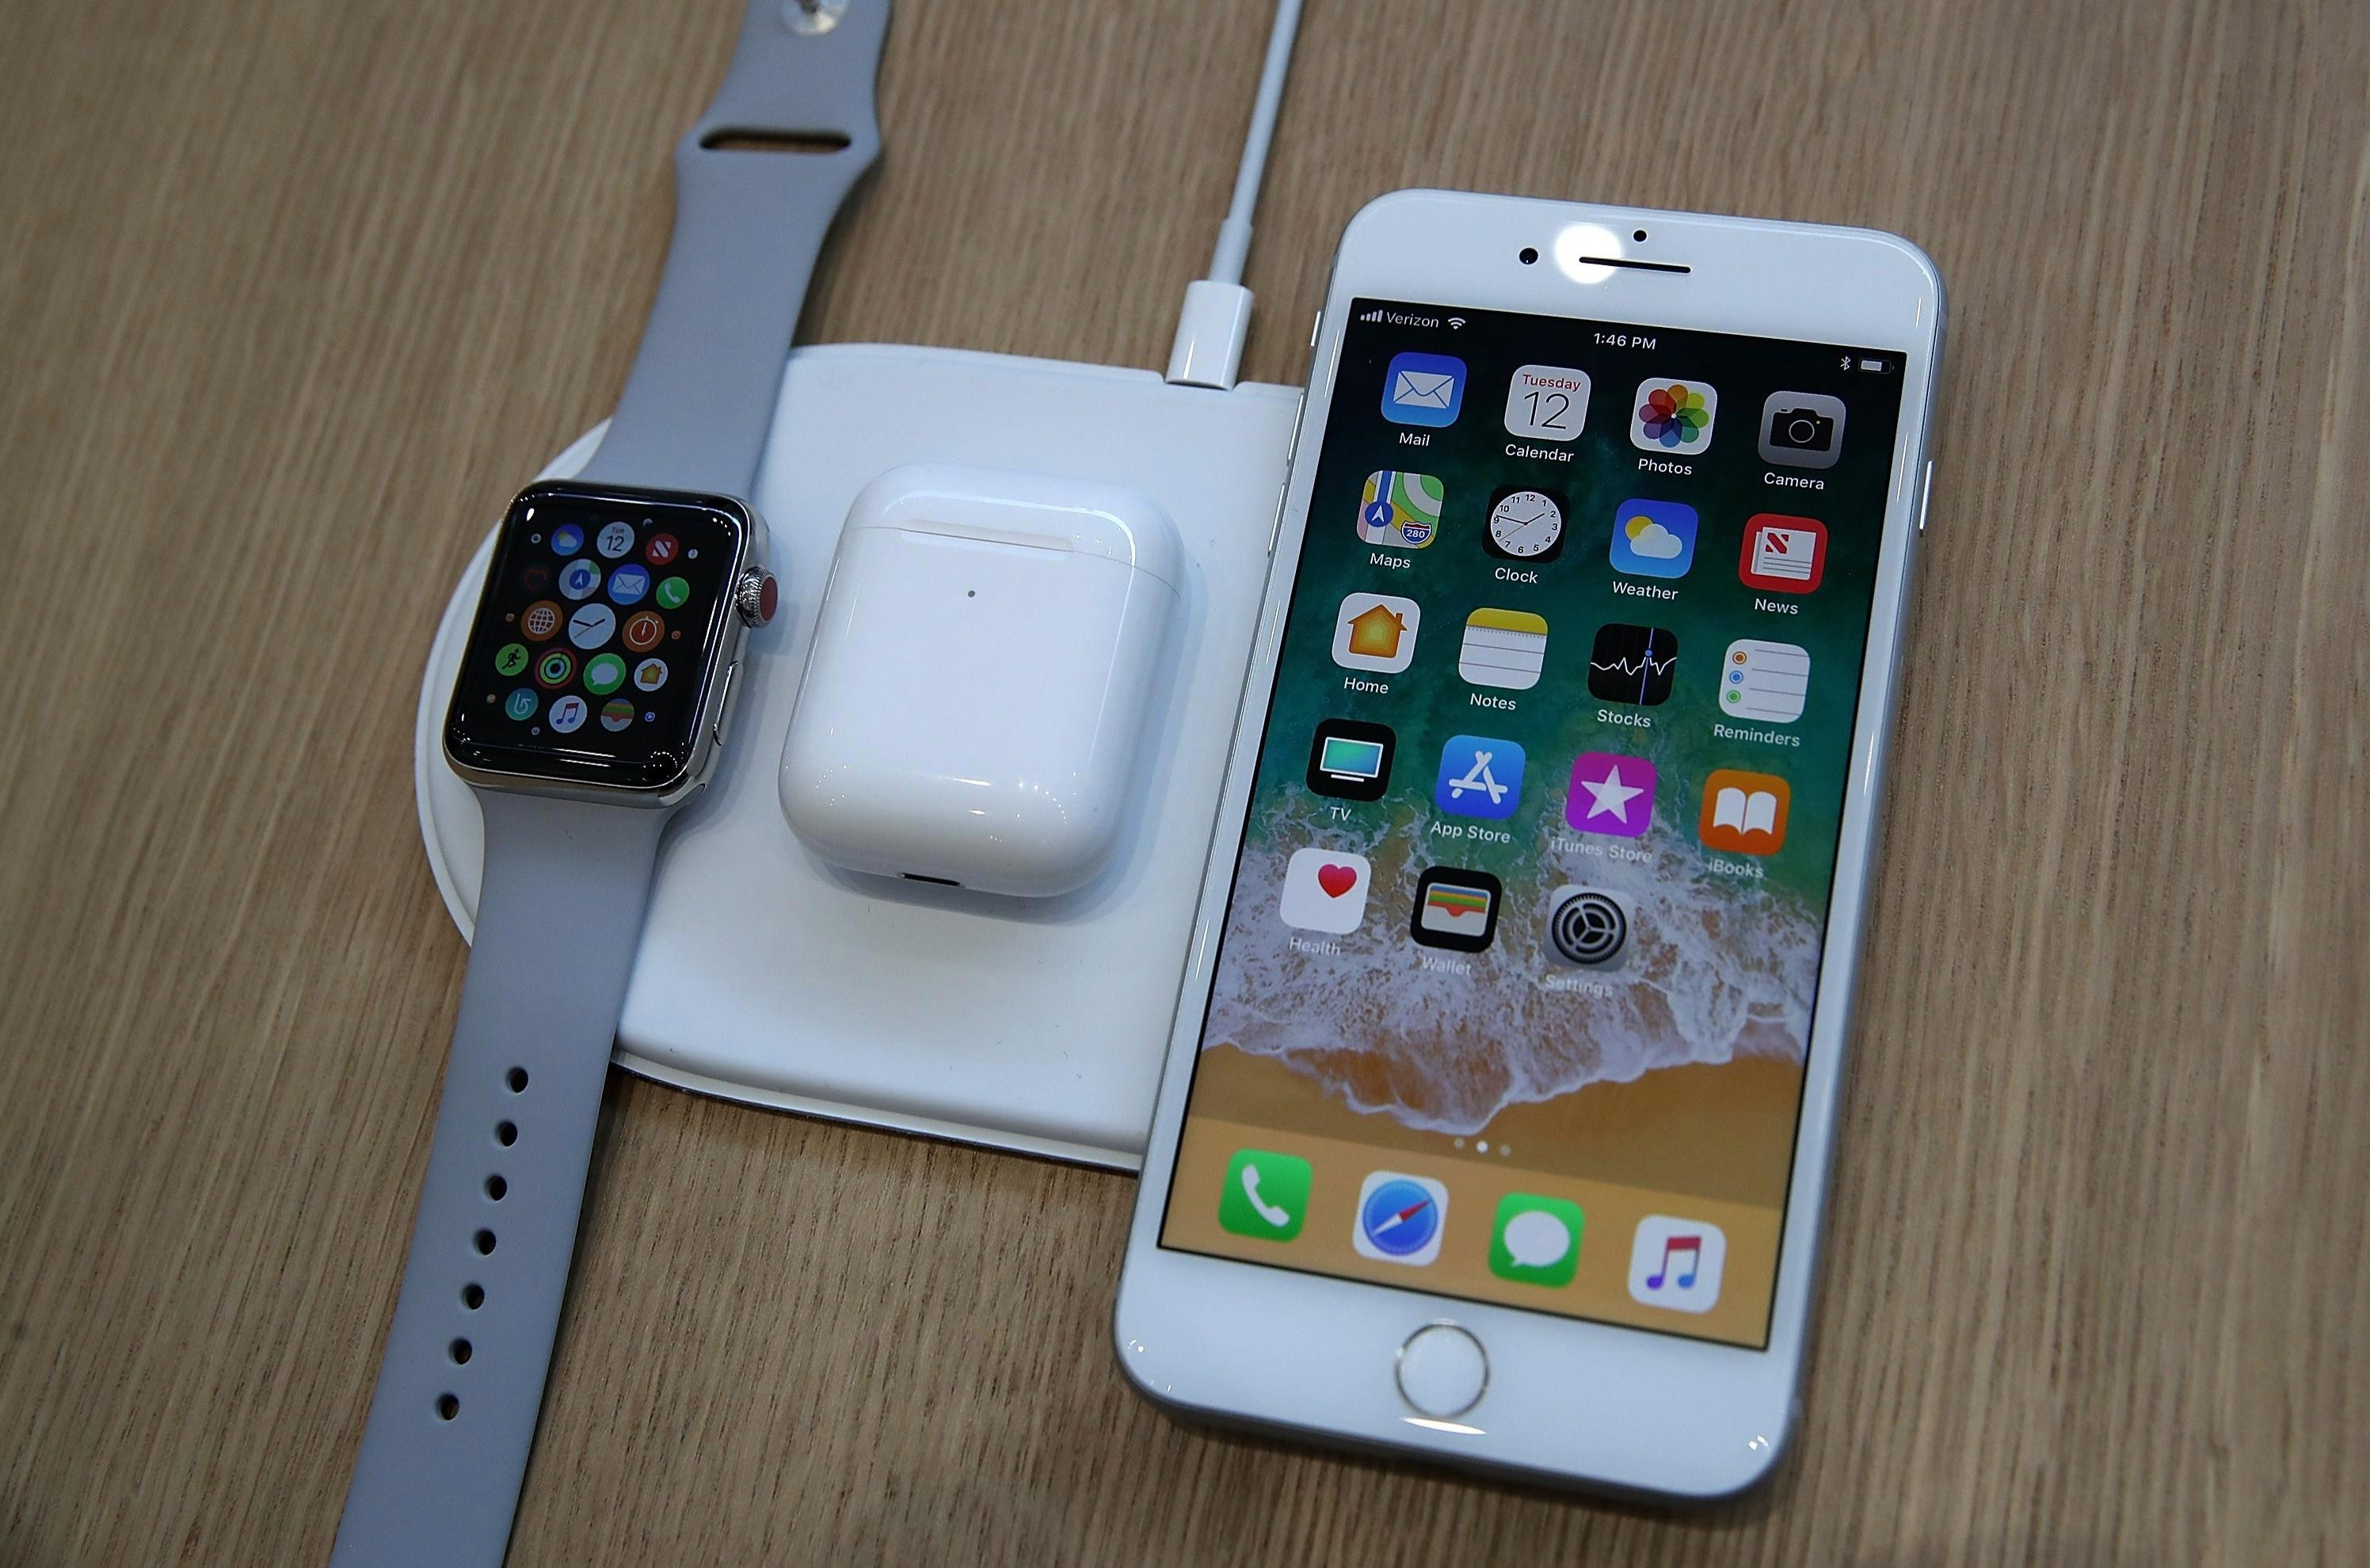 Wireless Charging Iphone Iphone Wireless Charging How Does It Work And What Are The Best